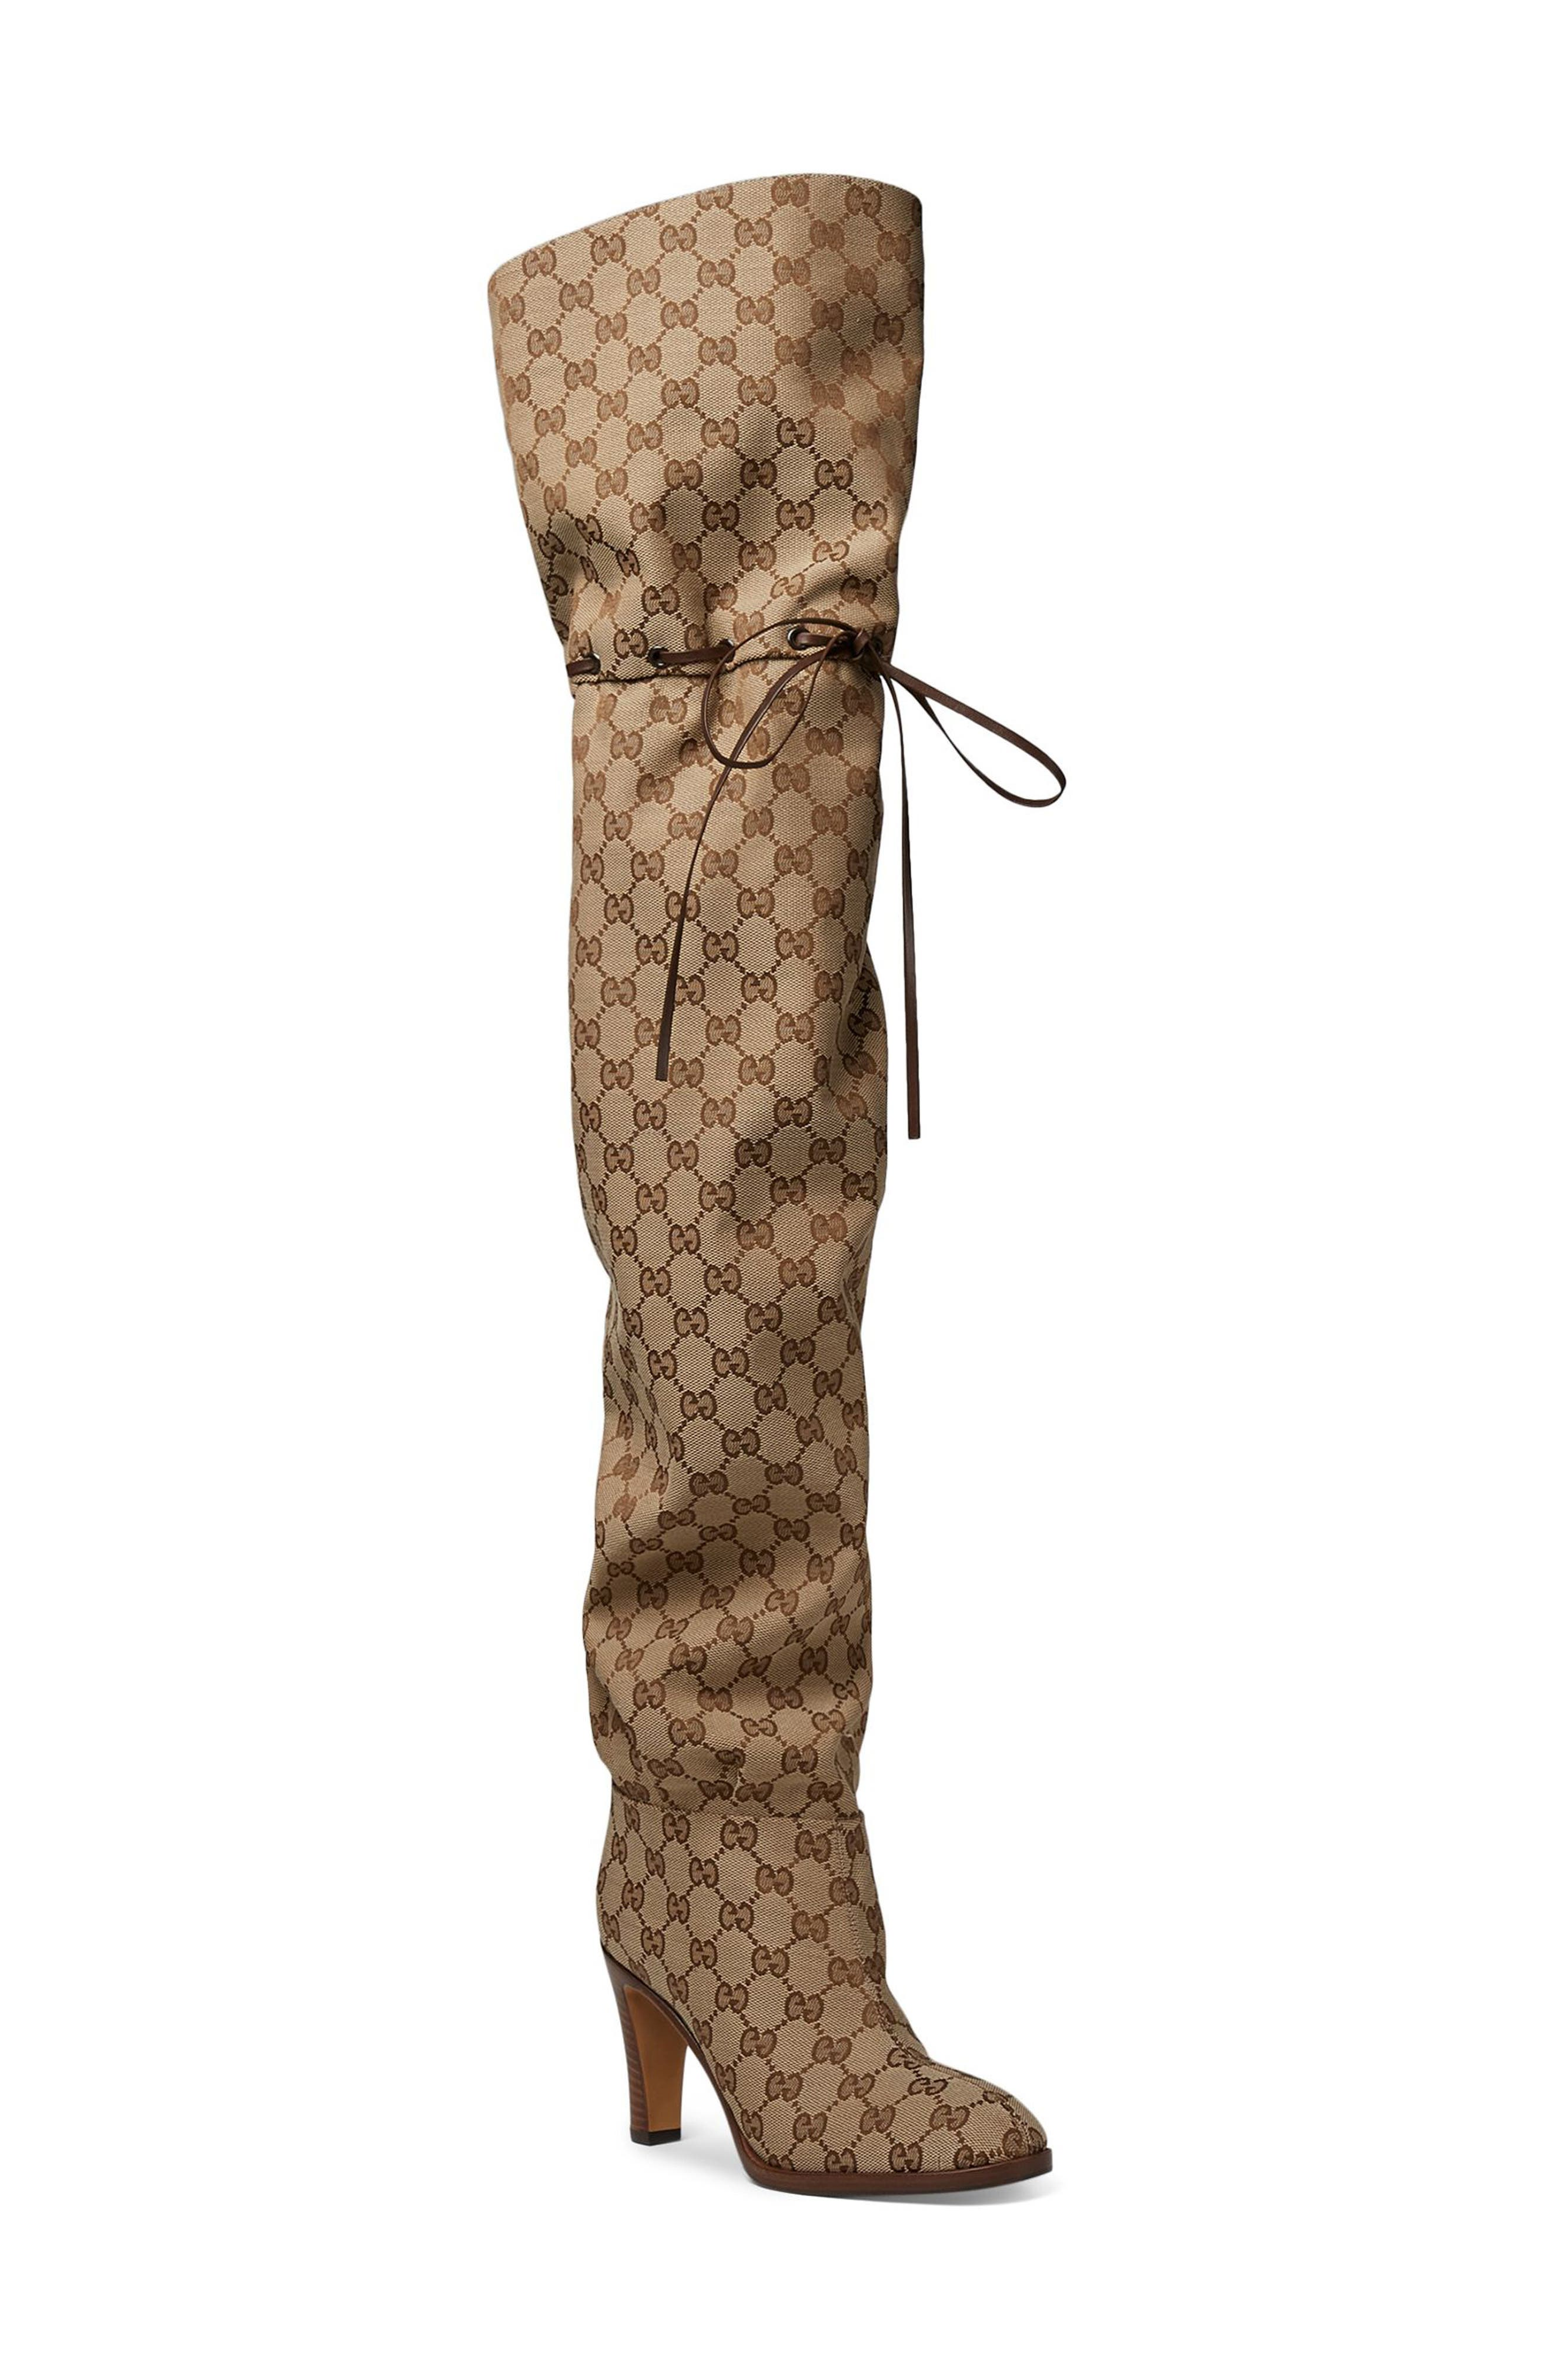 Gucci Original Gg Canvas Over The Knee Boot, Beige